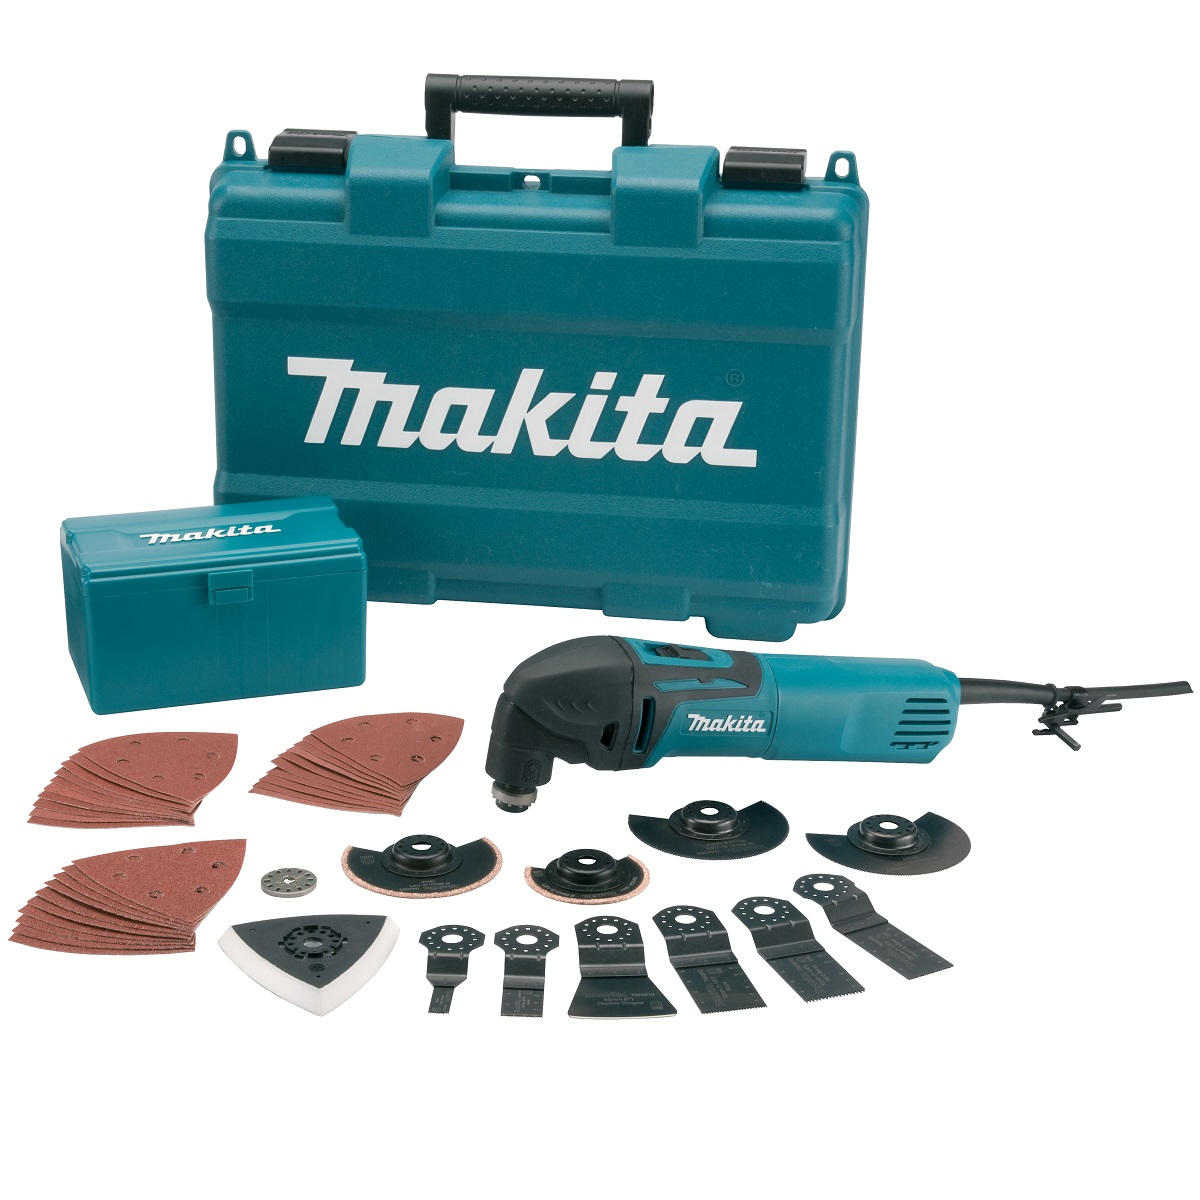 MAKITA TM3000CX3 OSCILLATING MULTI TOOL 240V WITH 42 ACCESSORIES